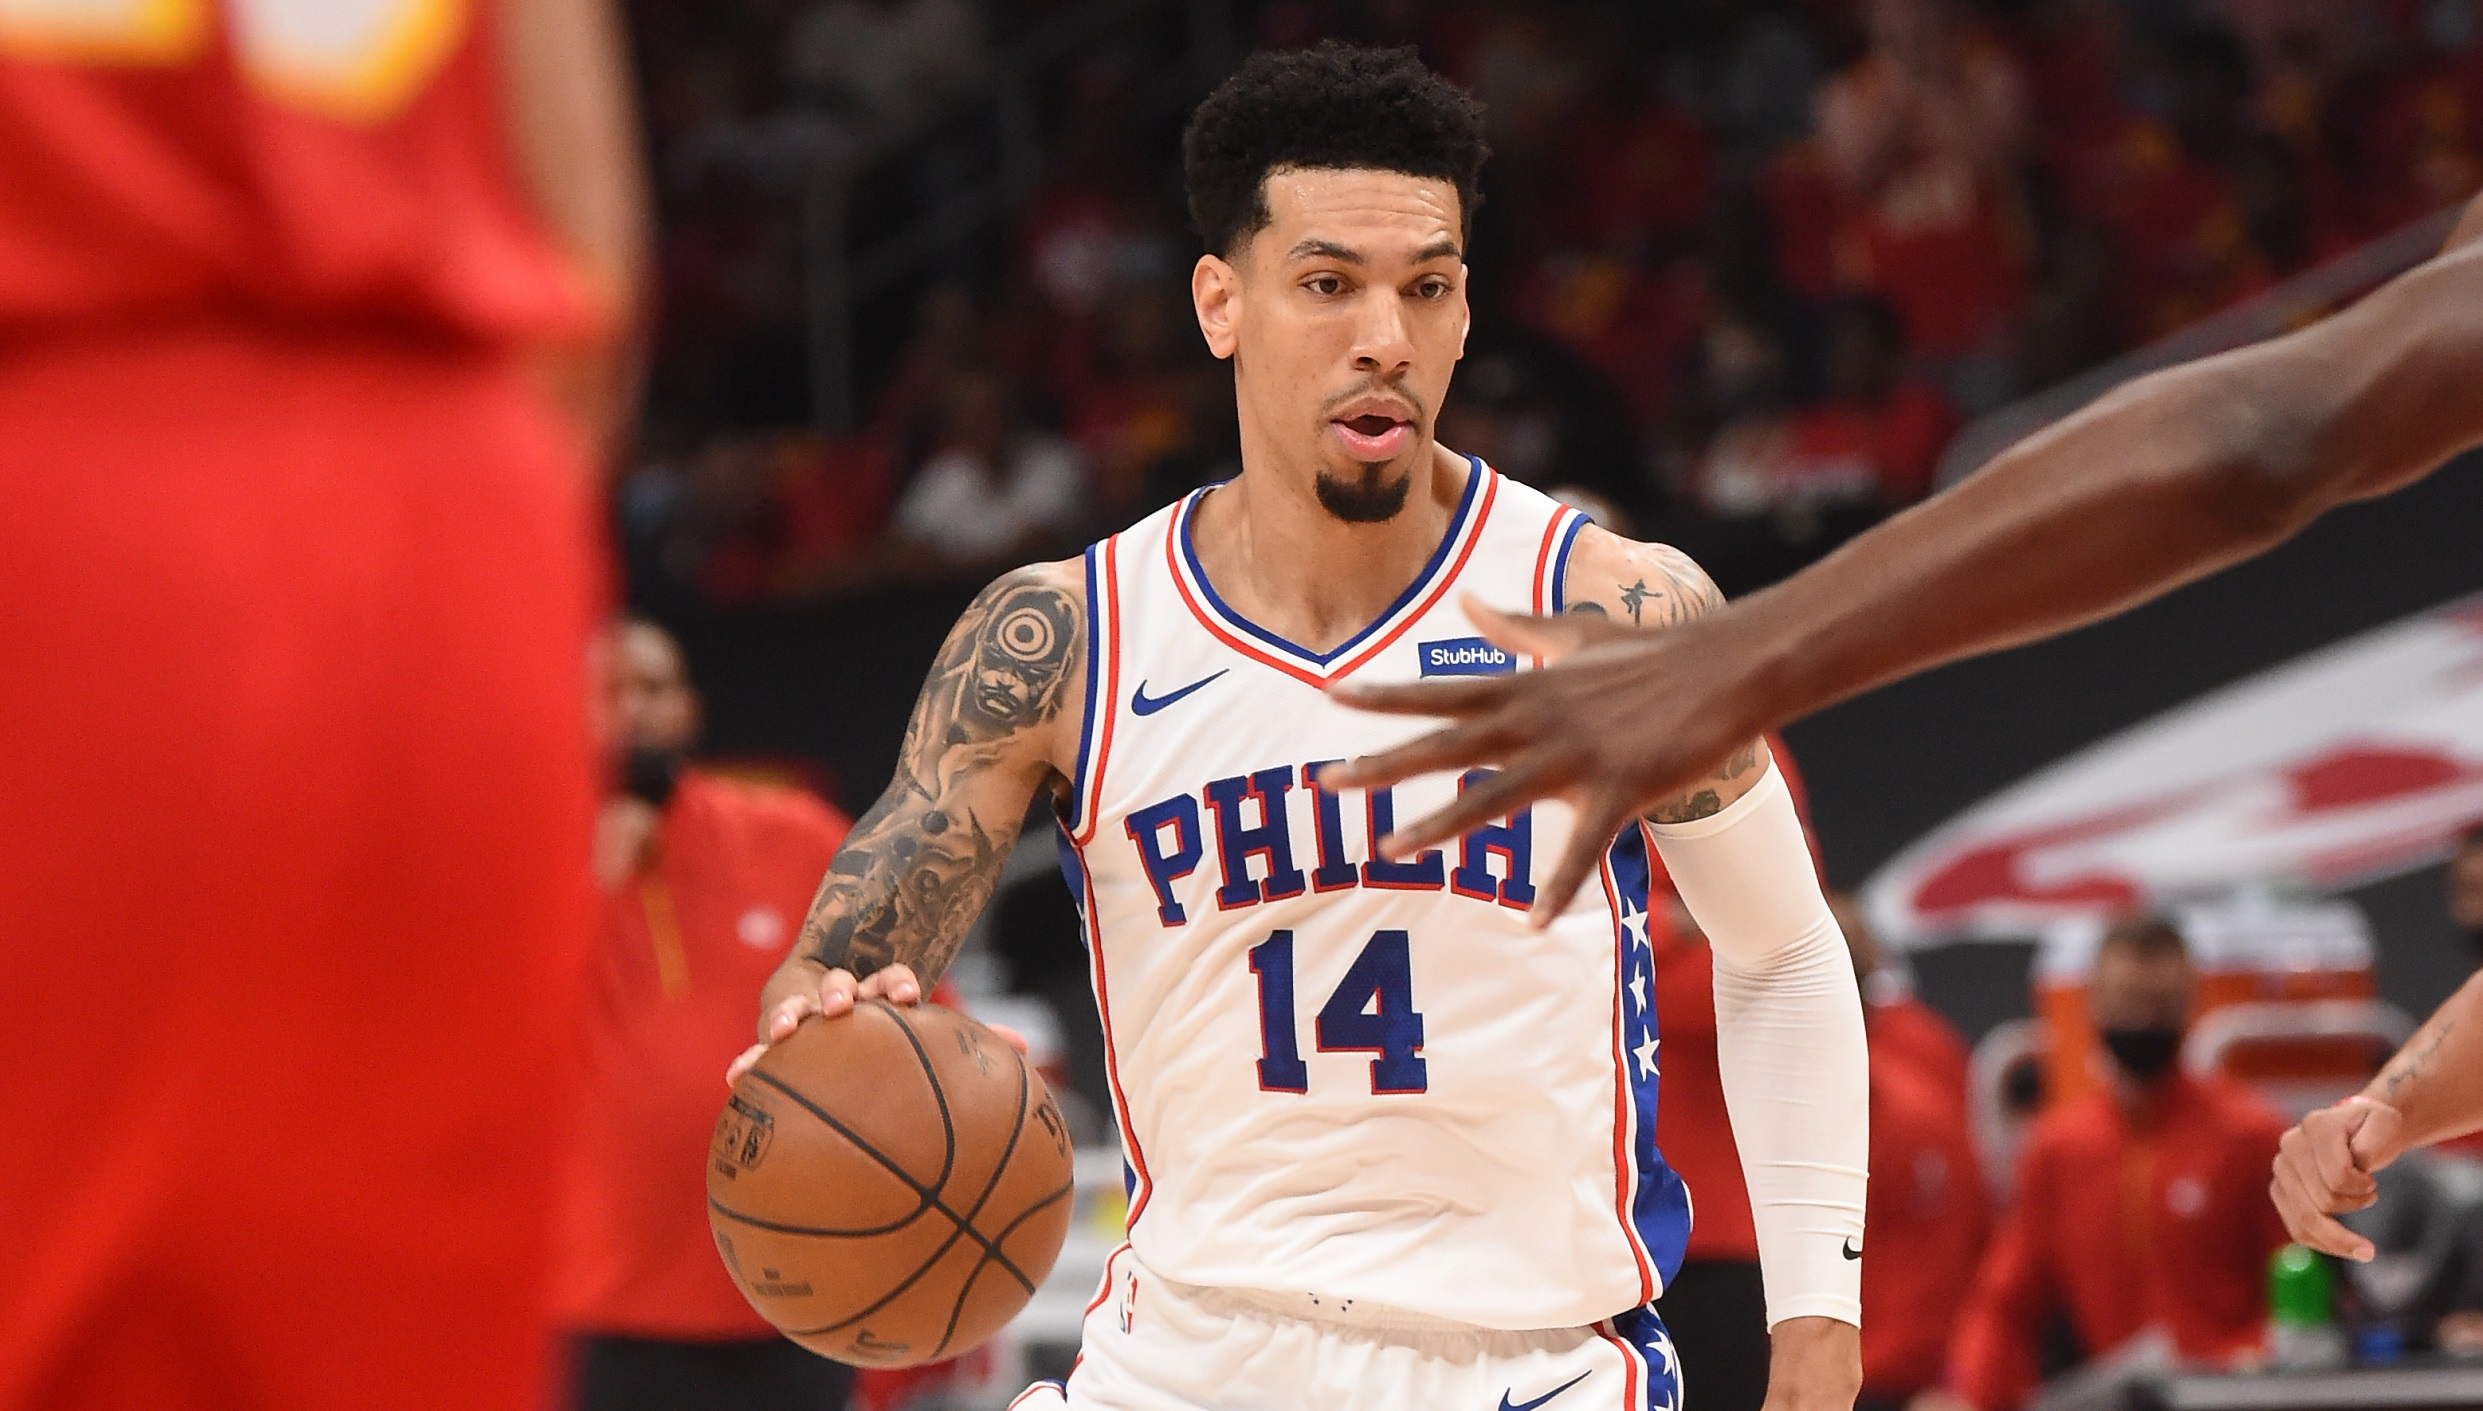 76ers guard Danny Green leaves Game 3 with strained calf, status uncertain